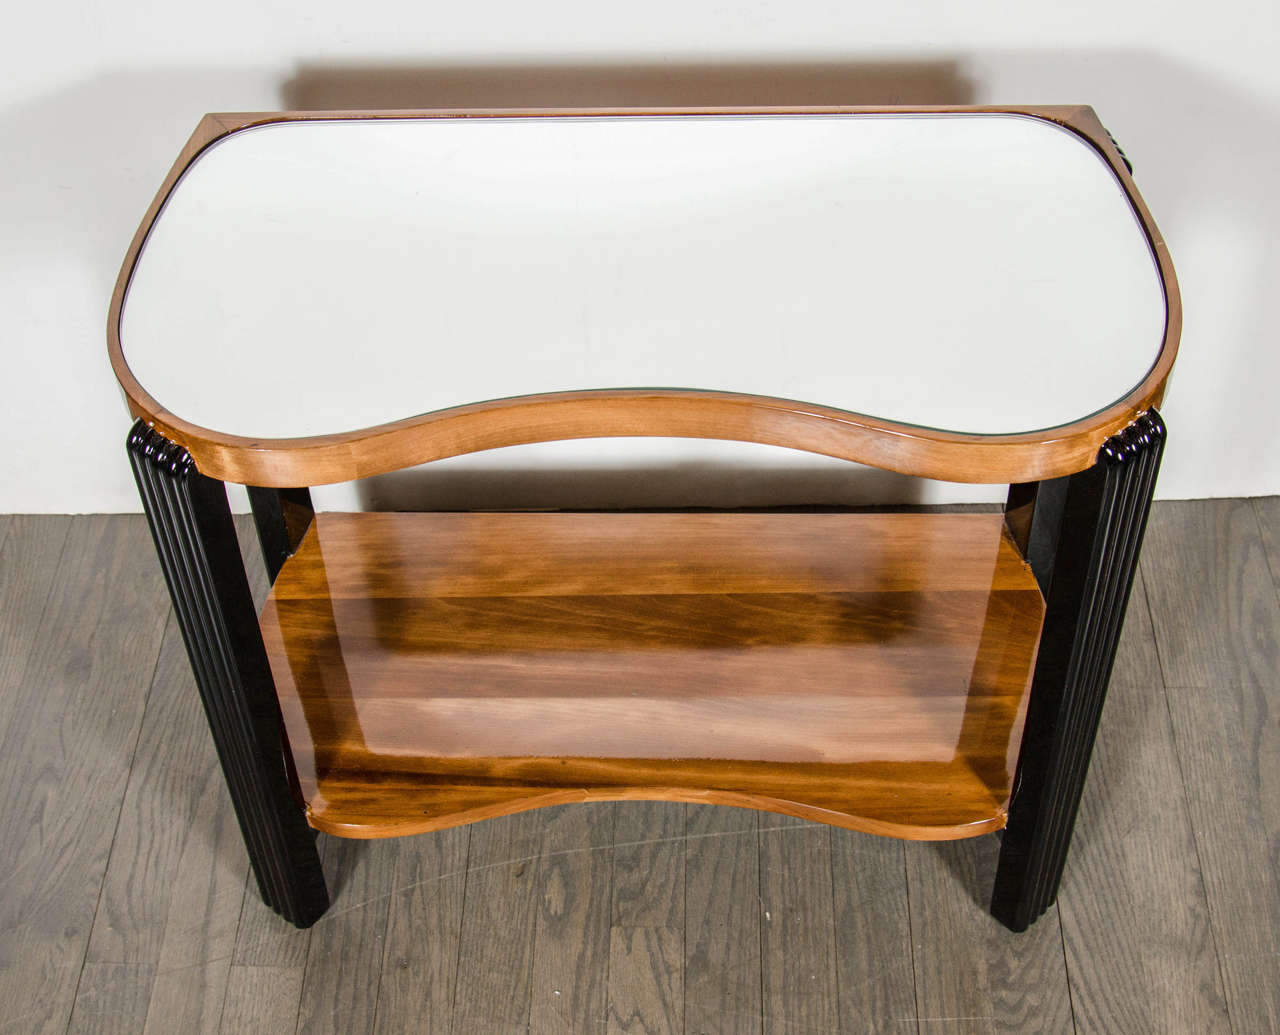 Art Deco Machine Age Side Table with Streamline Reeded Leg Design 4